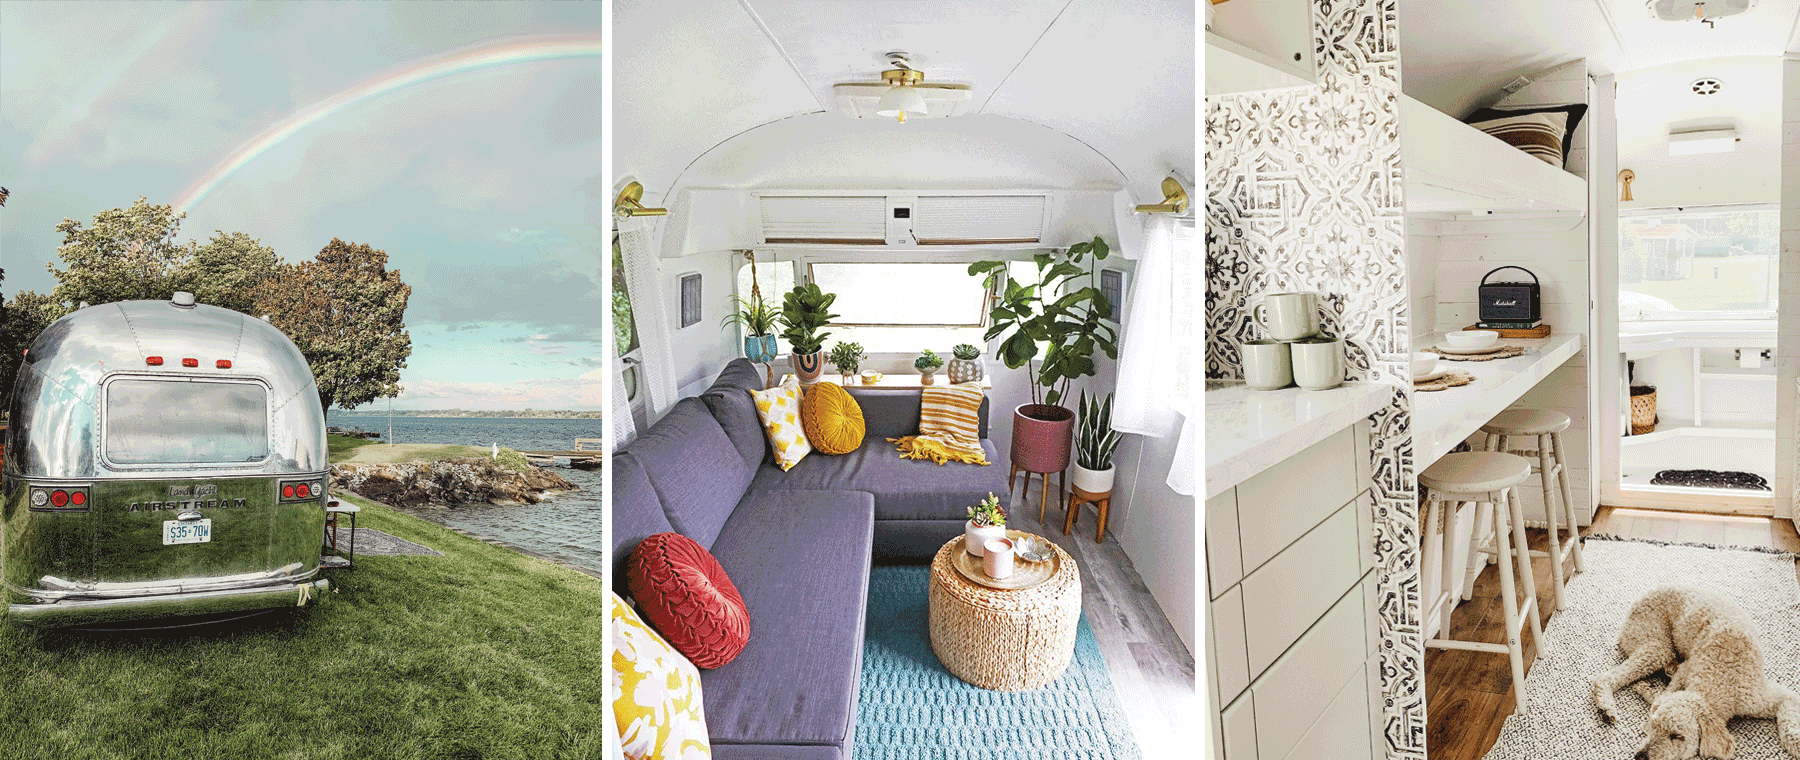 A tale of two (amazingly cute) Airstream trailers